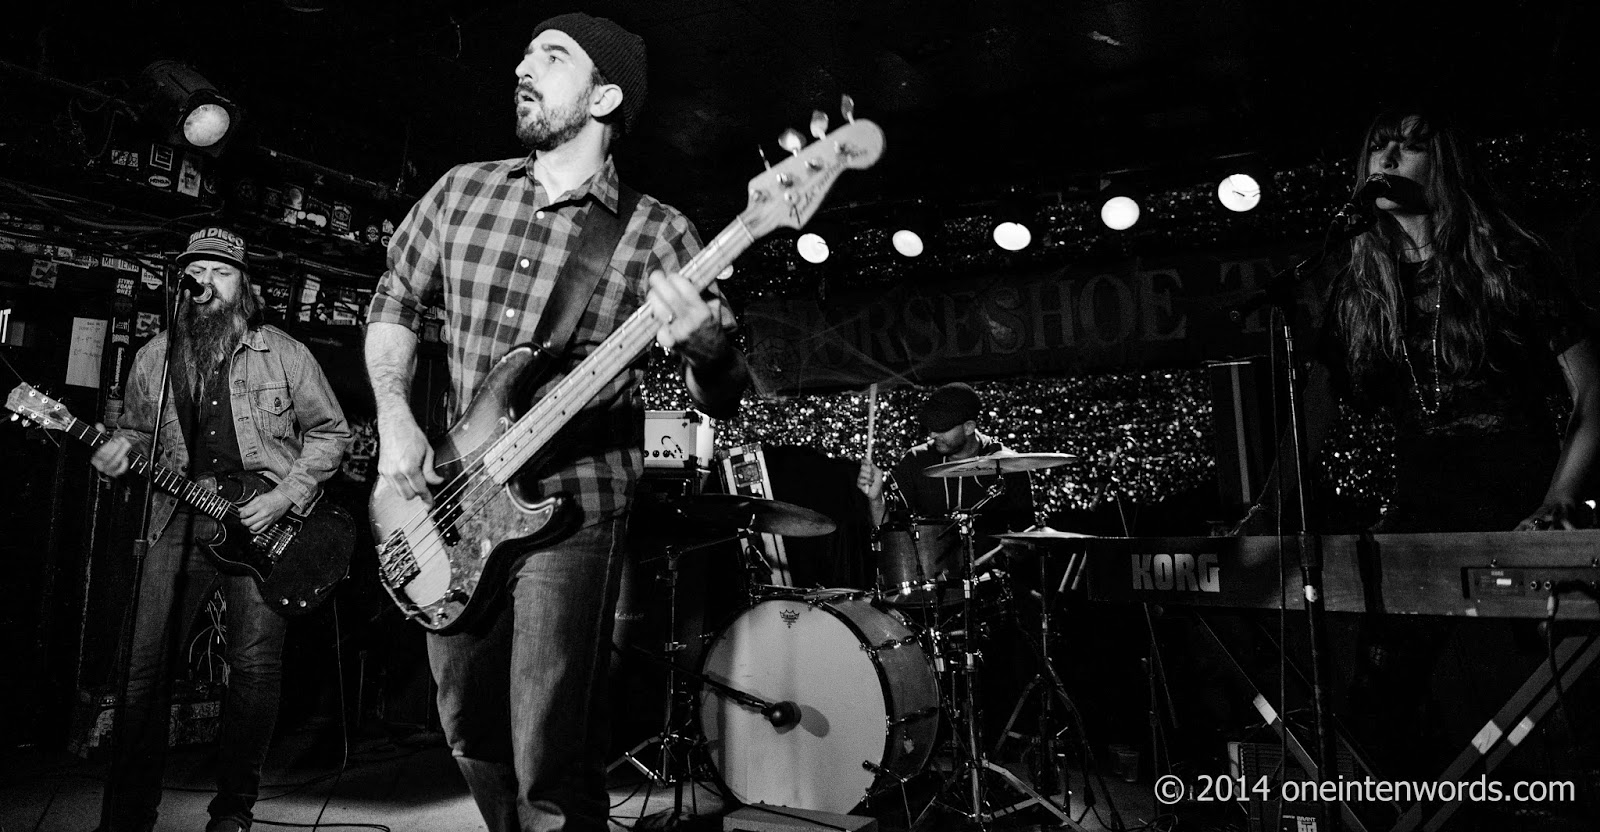 The Public Animal at The Horseshoe Tavern November 2, 2014 Photo by John at One In Ten Words oneintenwords.com toronto indie alternative music blog concert photography pictures